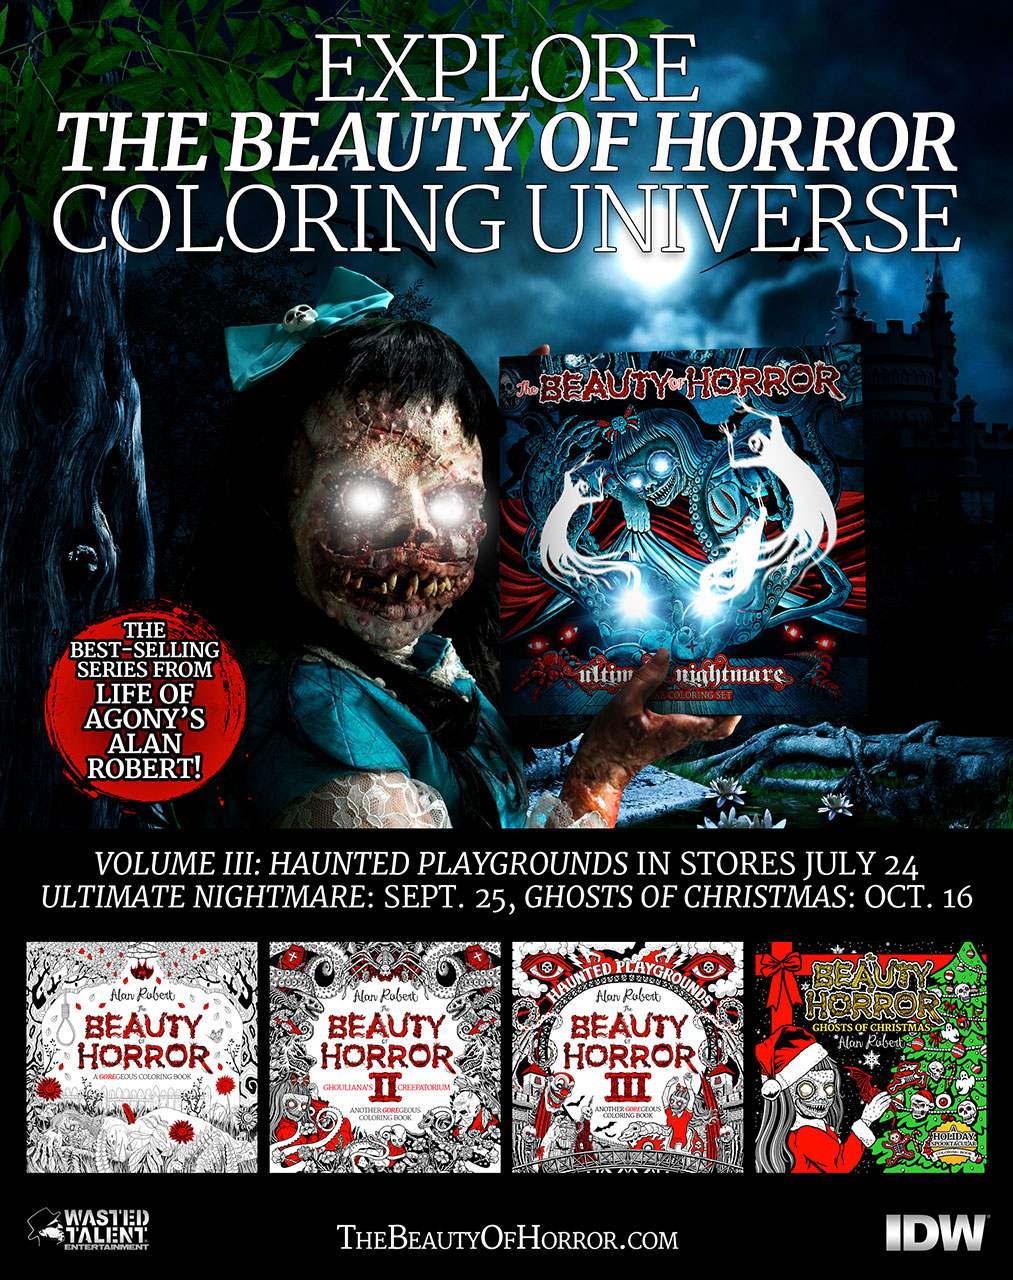 The Beauty of Horror: A GOREgeous Coloring Book by Alan Robert